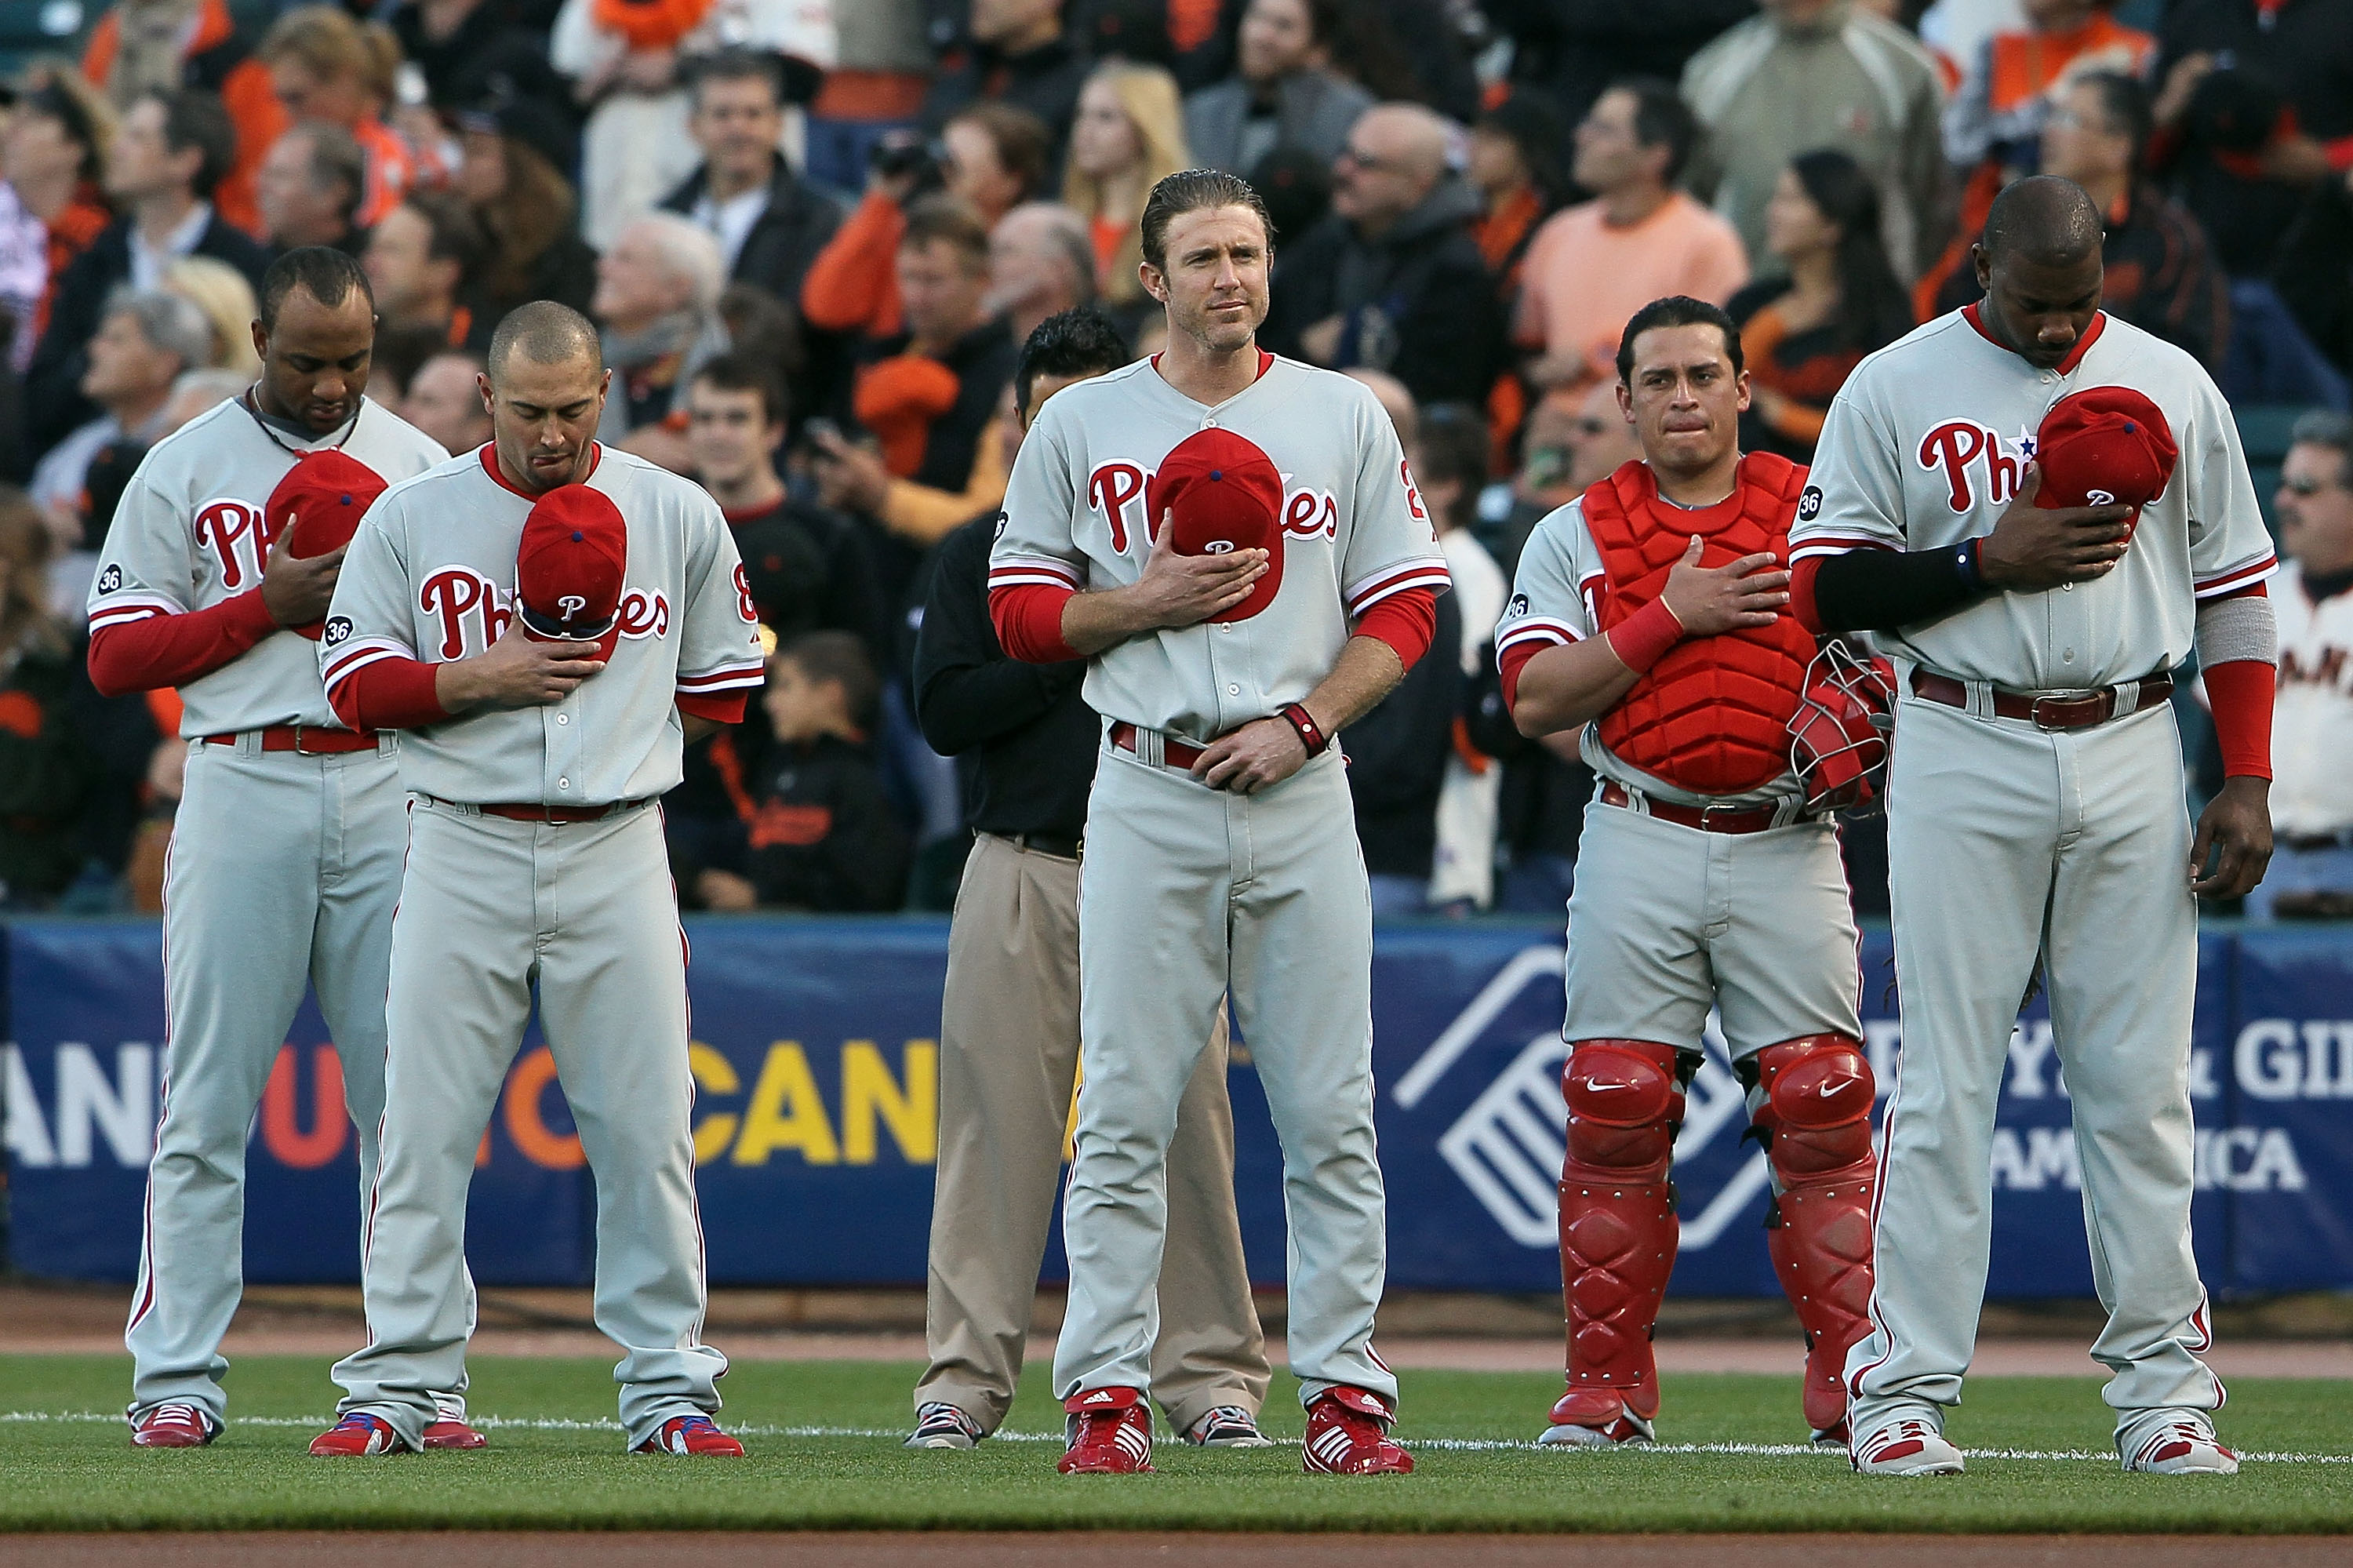 SAN FRANCISCO - OCTOBER 20:  (L-R) Ben Francisco #10, Shane Victorino #8, Chase Utley #26, Carlos Ruiz #51 and Ryan Howard #6 of the Philadelphia Phillies stand during the national anthem before Game Four of the NLCS during the 2010 MLB Playoffs against t